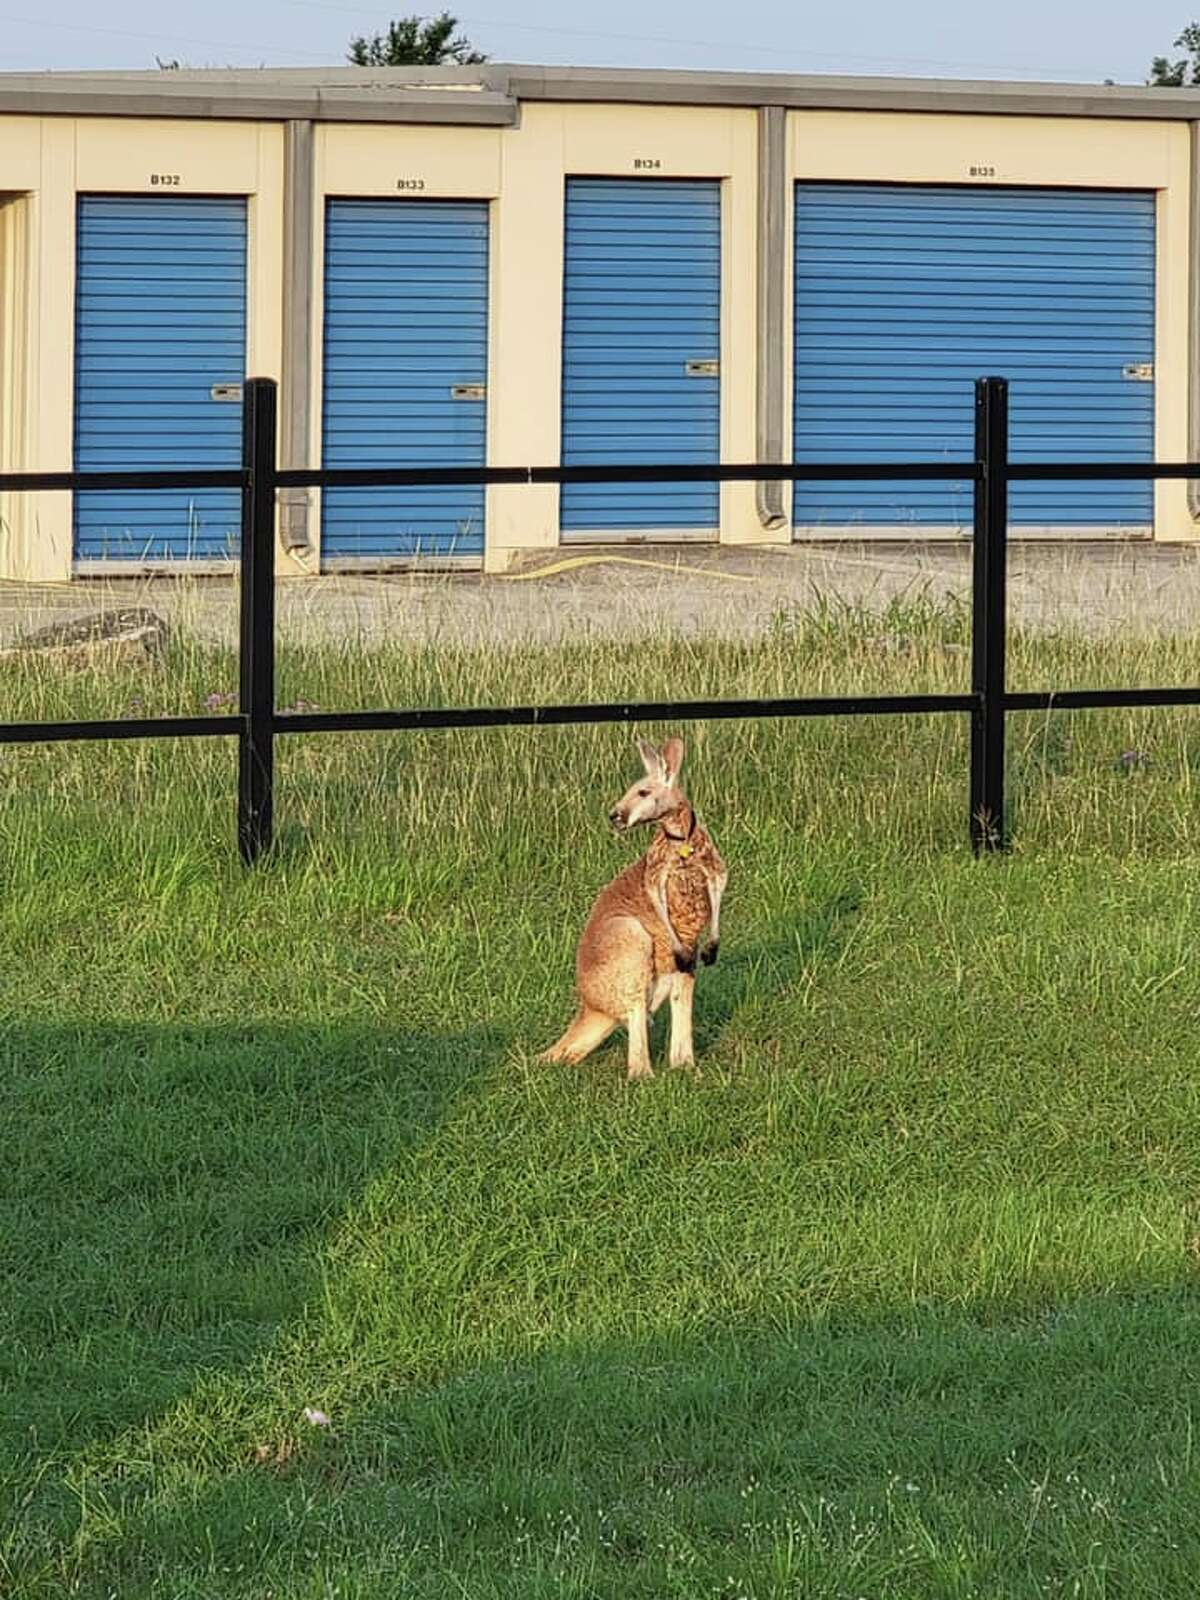 It took about 10 to 15 minutes to get the wallaby, Calaerner says.